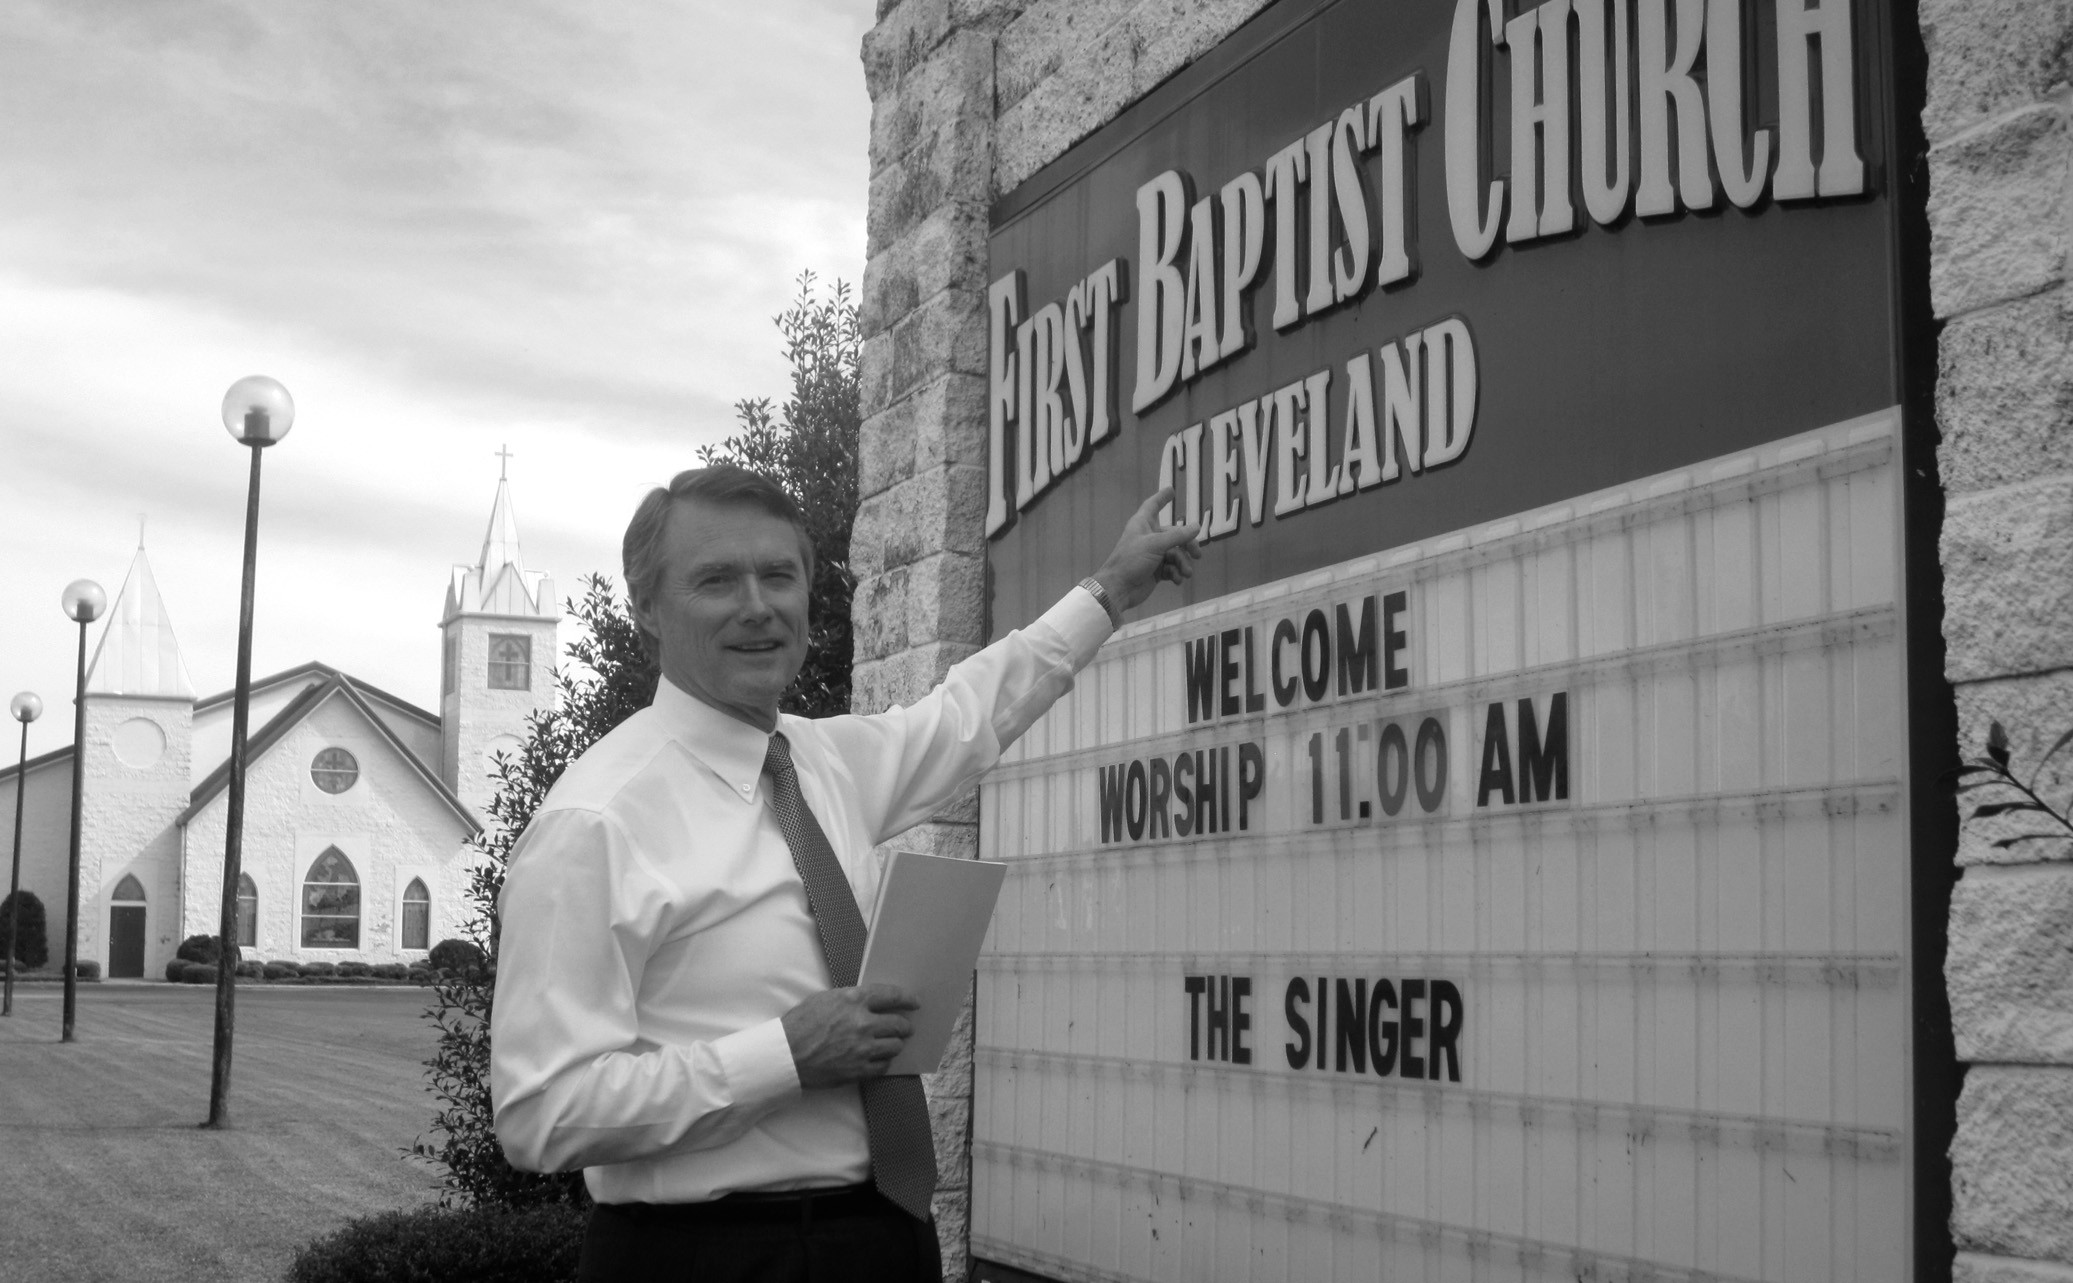 """Chris Green, minister of music at Cleveland First Baptist Church, emphasizes the venue for an upcoming singing school that he, pastor Rick Dill, and the congregation are hosting at the church. The school, modeled loosely on similar schools of half a century ago, is designed to help people learn to sing harmony, or """"parts"""" that are a distinguishing feature of much if not most of southern gospel music over the last 150 years. That skill is dying out as choir members who learned to sing in schools of yesteryear retire and are not replaced by members of equivalent training. The singing school hopes to help remedy that by providing an opportunity for people to learn a new interest and skill to enrich their lives. Green holds a copy of the songbook Miracles, compiled by Charles Towler, instructor for the school. The entire community is invited to attend. Times are Sunday, Nov. 3, 3 p.m. to 7 p.m. and Monday – Thursday evenings, Nov. 4-7, 6:30 p.m. to 8:30 p.m. Call (205) 429-3210 for more information or to indicate your interest. Also, cgreen@otelco.net, to request a space. School is free; an offering will be taken to cover expenses. – Ron Gholson"""